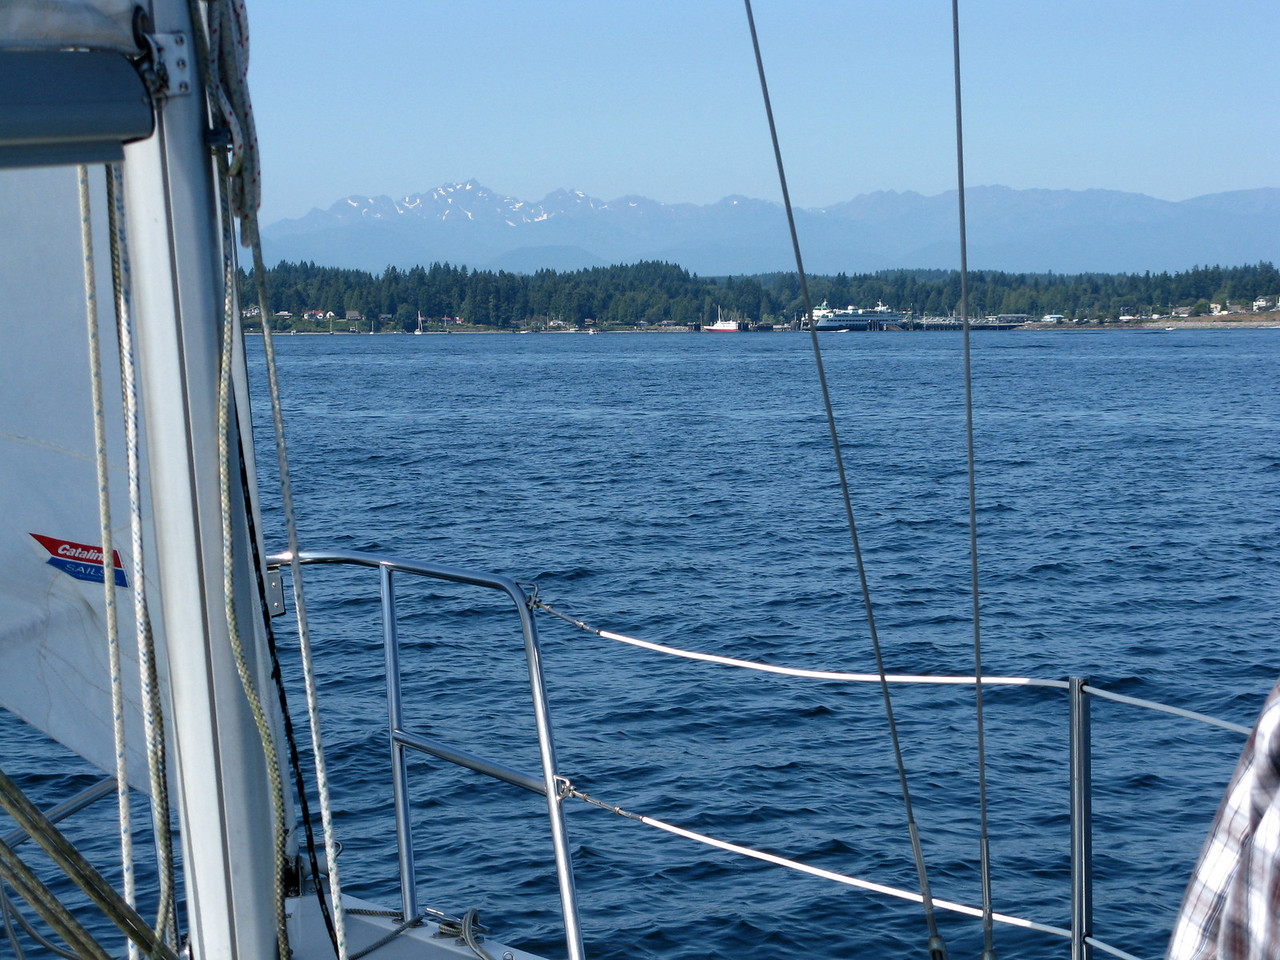 Patches of snow can be seen on the Olympic Mountains in the distance above Kingston as we head west.